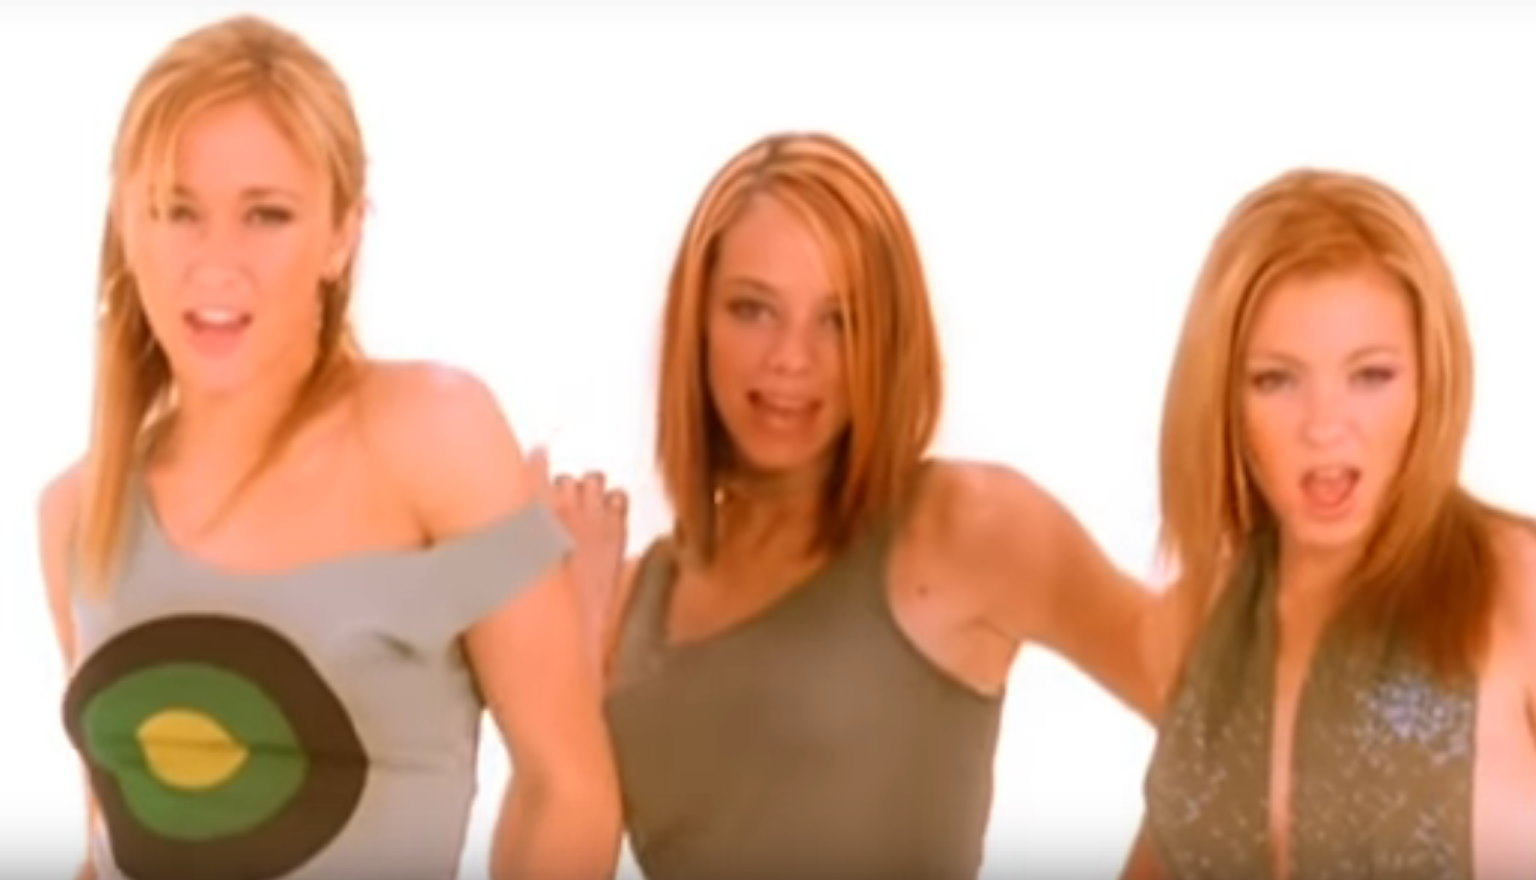 Top 10 Atomic Kitten Songs British Girl Band From The 90s Best Music Lists